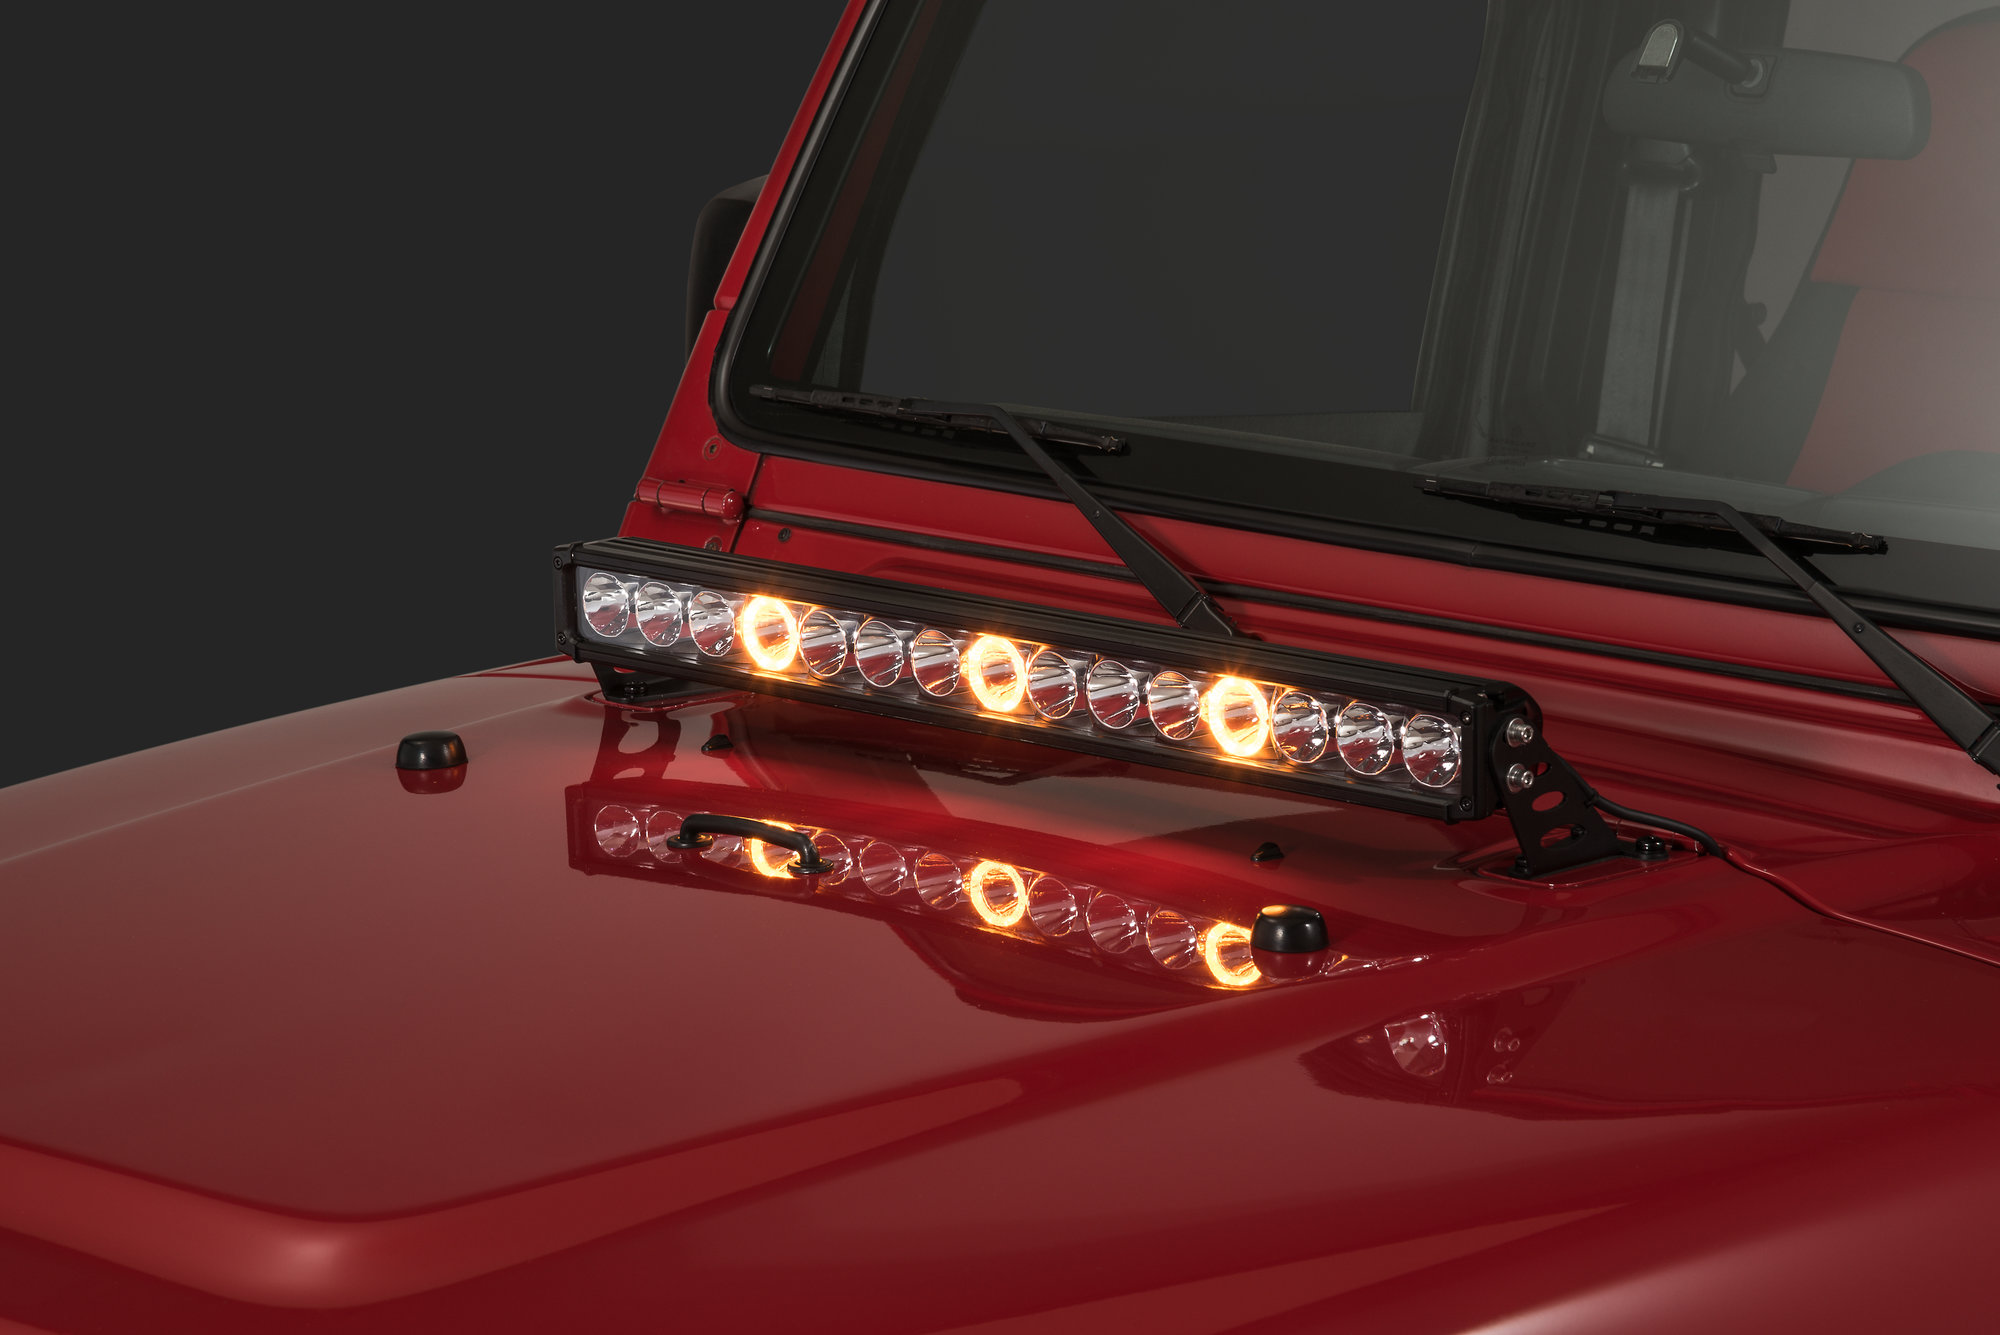 hight resolution of quadratec j3 led 28 light bar with hood mount brackets and wiring for 97 06 jeep wrangler tj unlimited quadratec